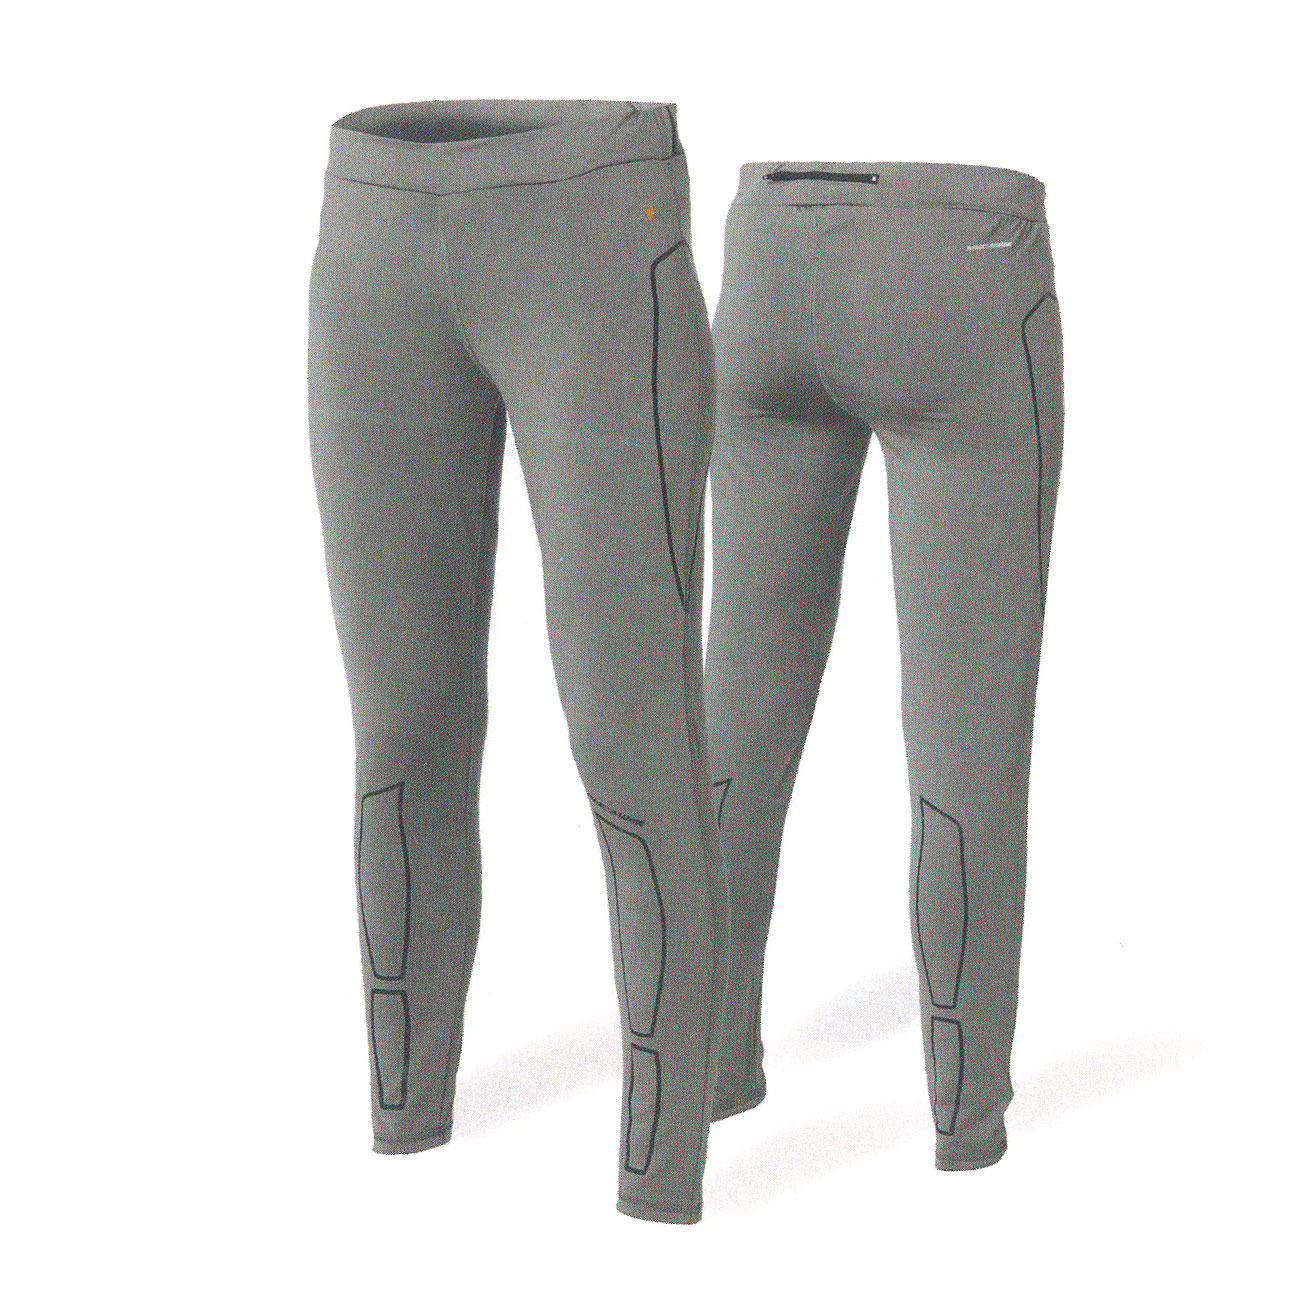 Rudder Pant Quickdry Women